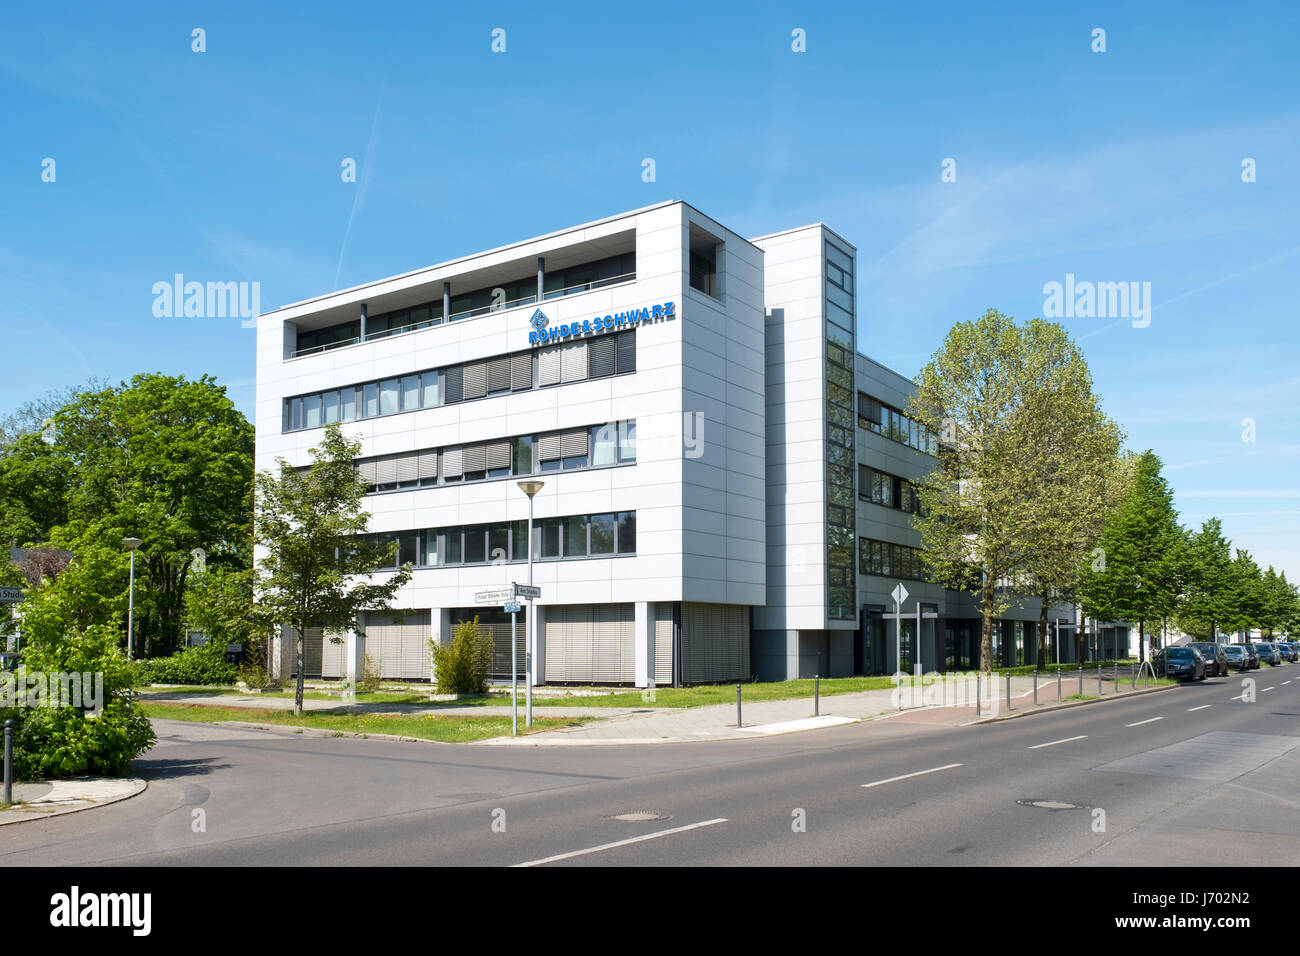 Rohde and Schwarz electronics manufacturer at Adlershof Science and Technology Park  Park in Berlin, Germany - Stock Image